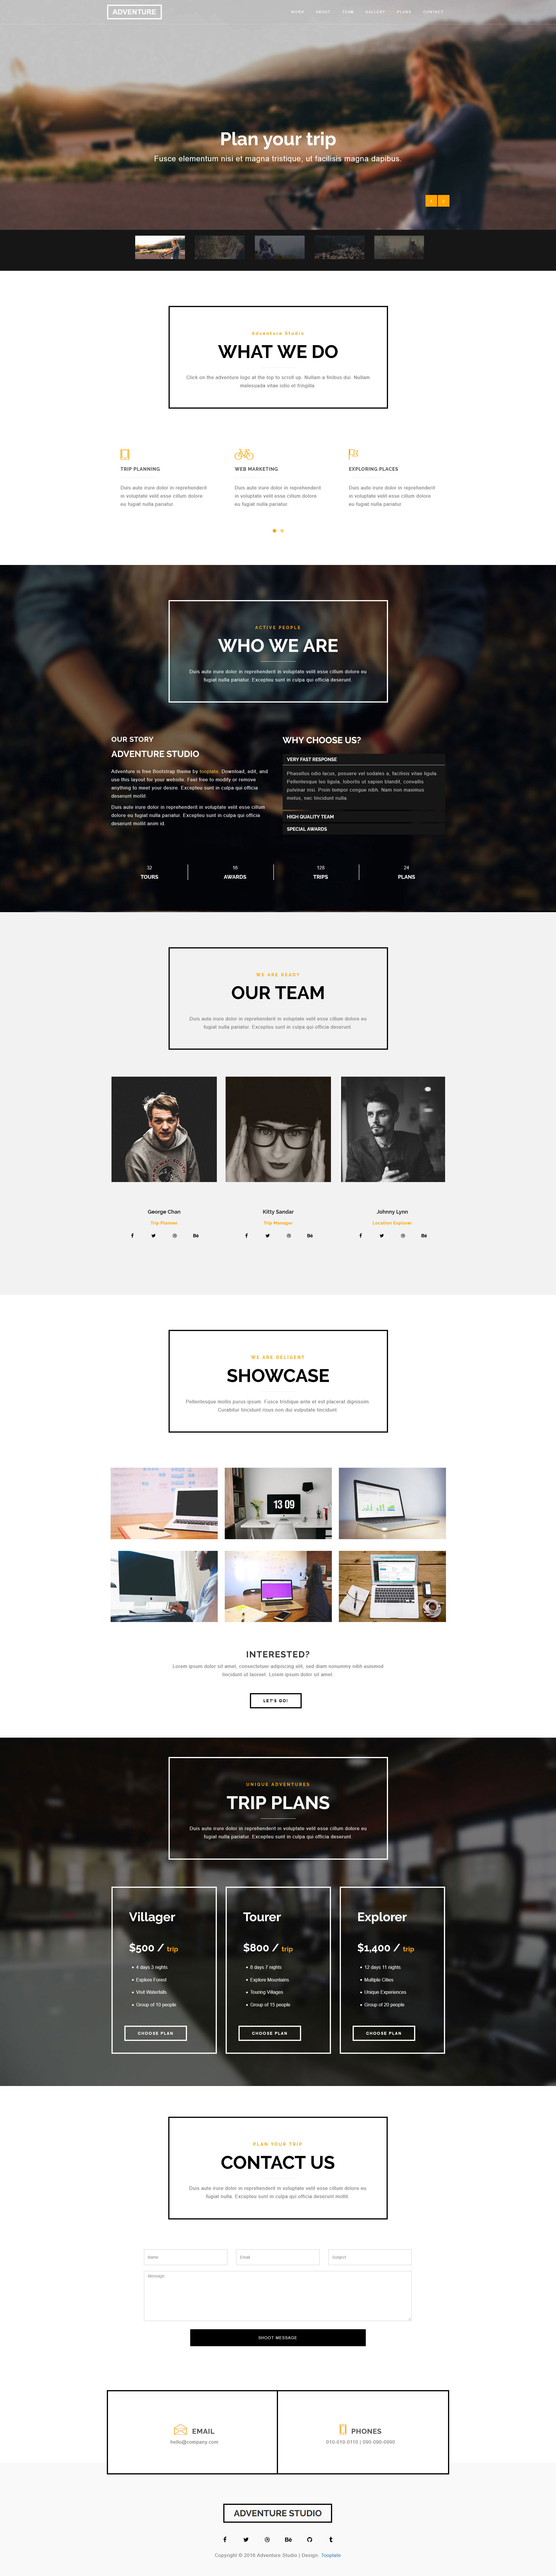 Adventure Free Responsive Html5 Bootstrap Template Htmltemplates